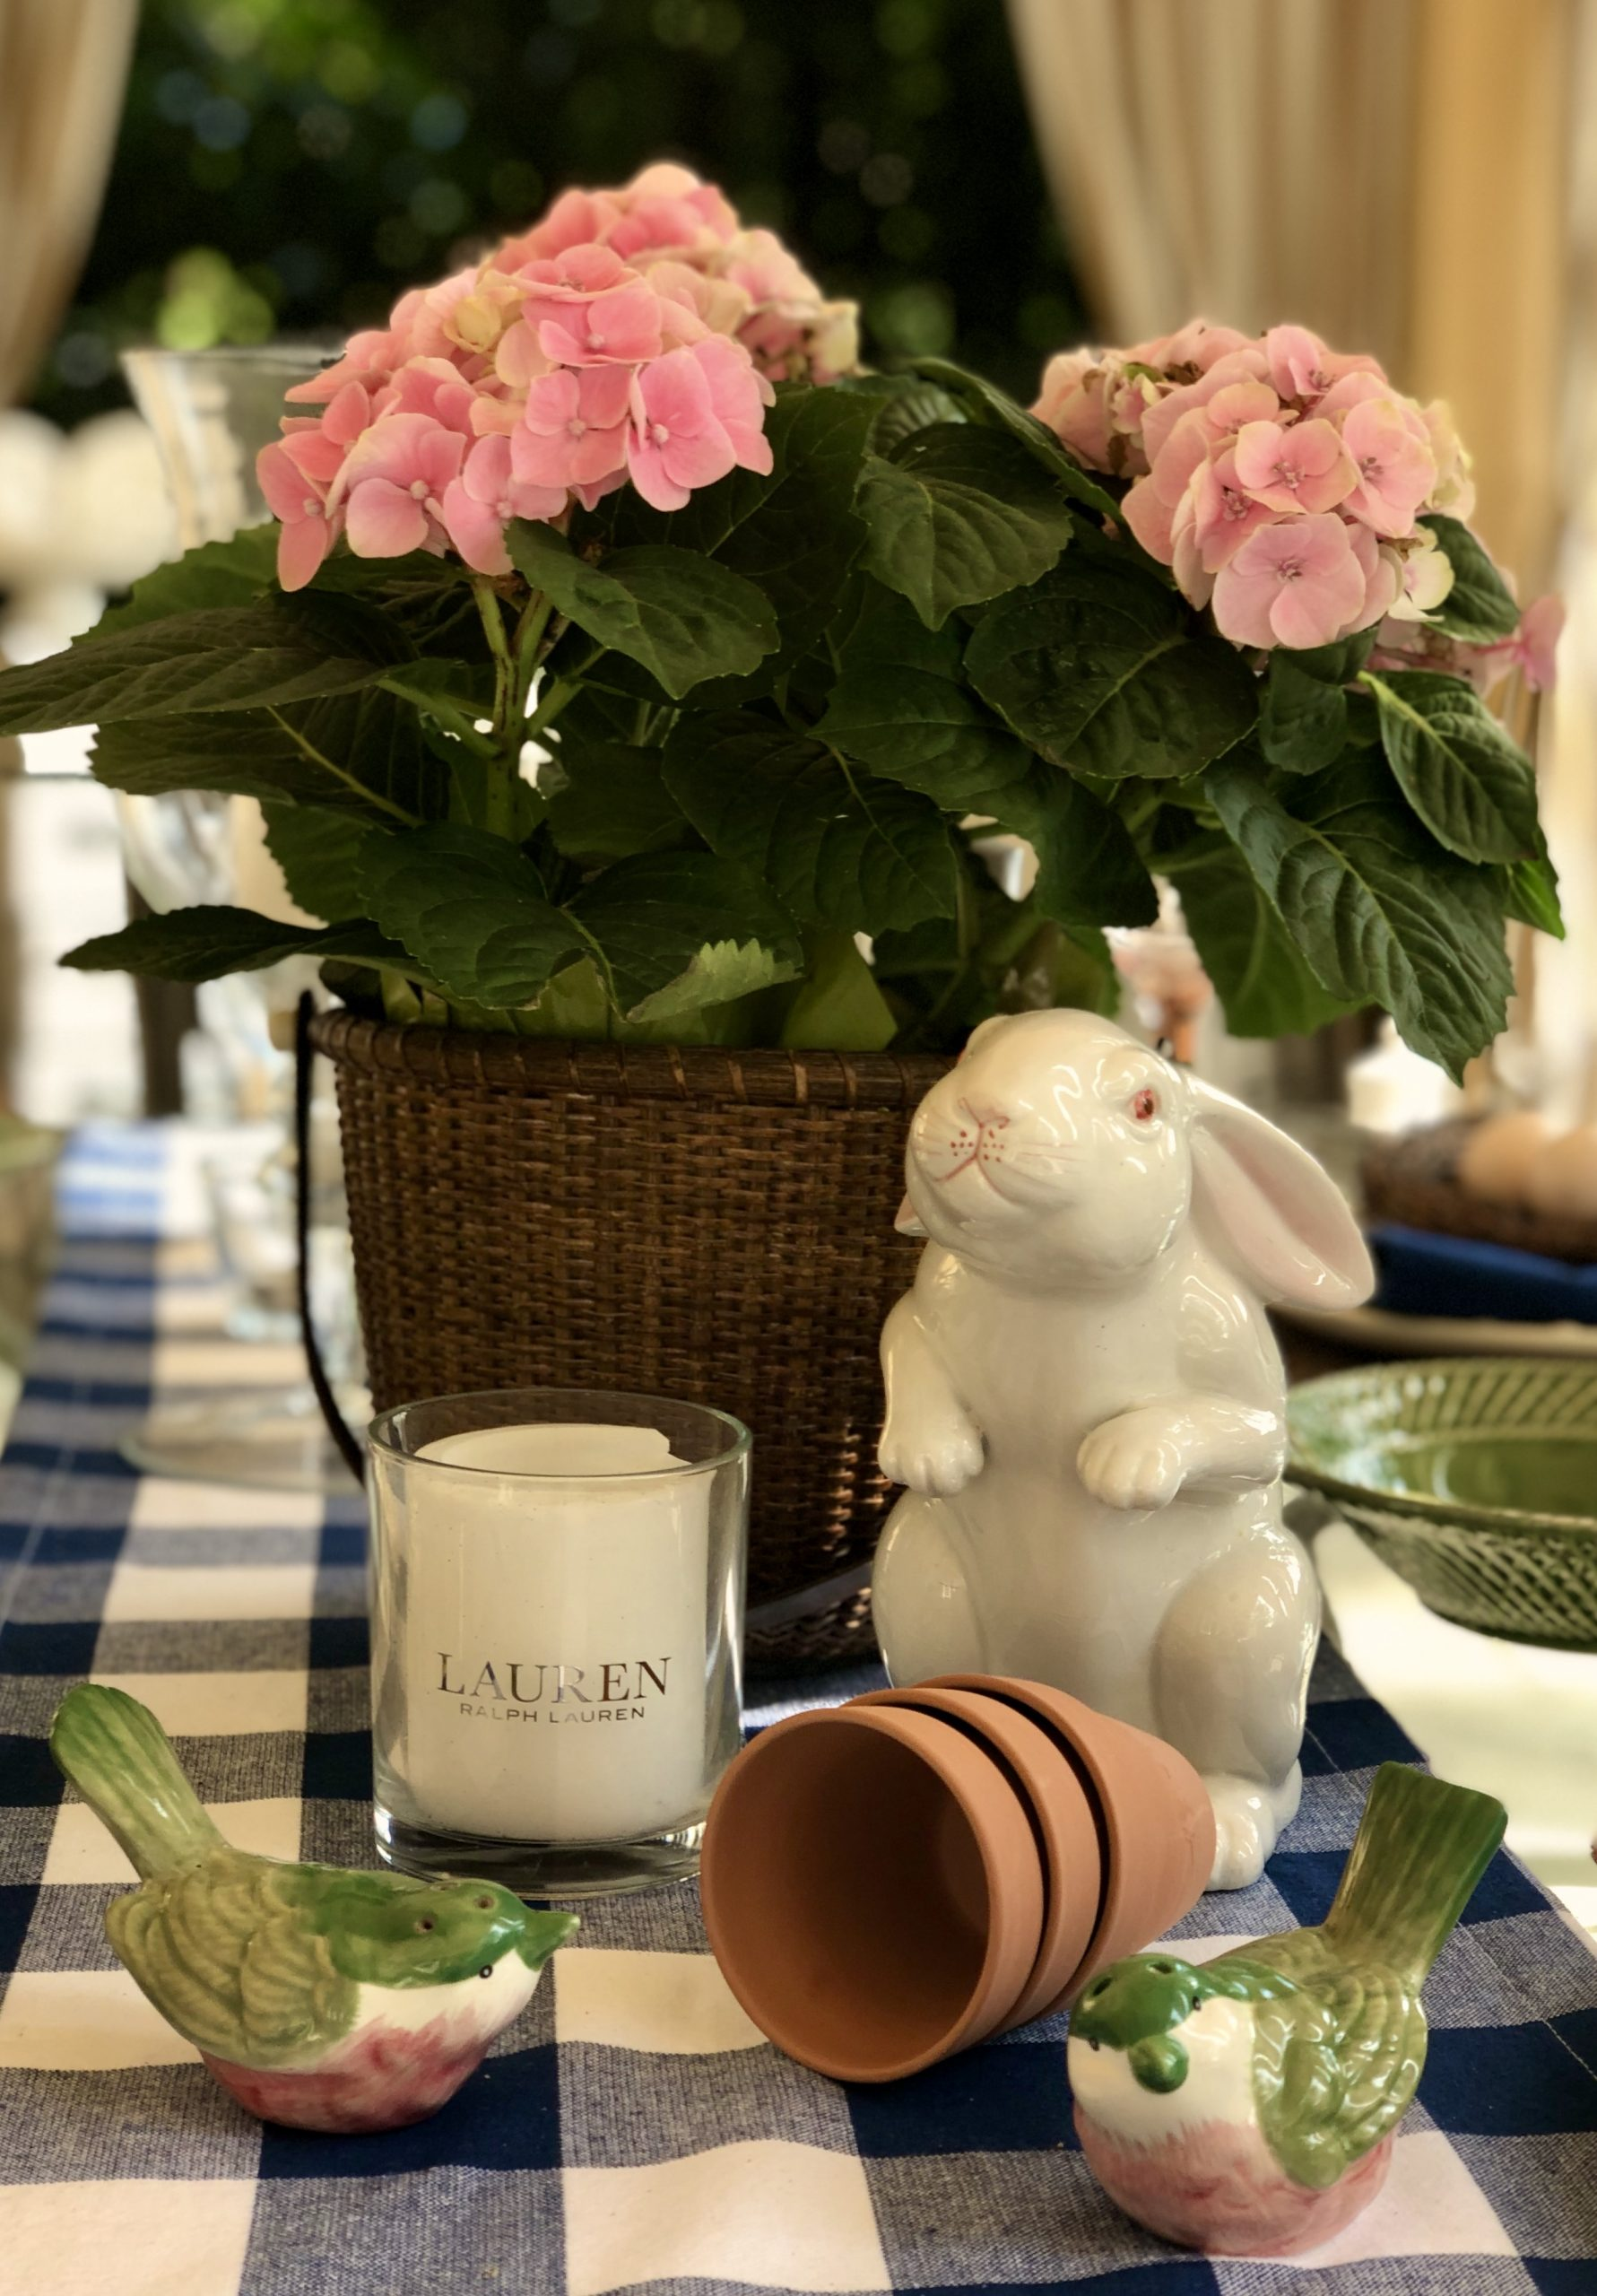 Easter Tablescape With Bundt, Hydrangea In A Basket And Bird Salt And Pepper Shakers. All Set On a Blue And White Buffalo Plaid Table Runner